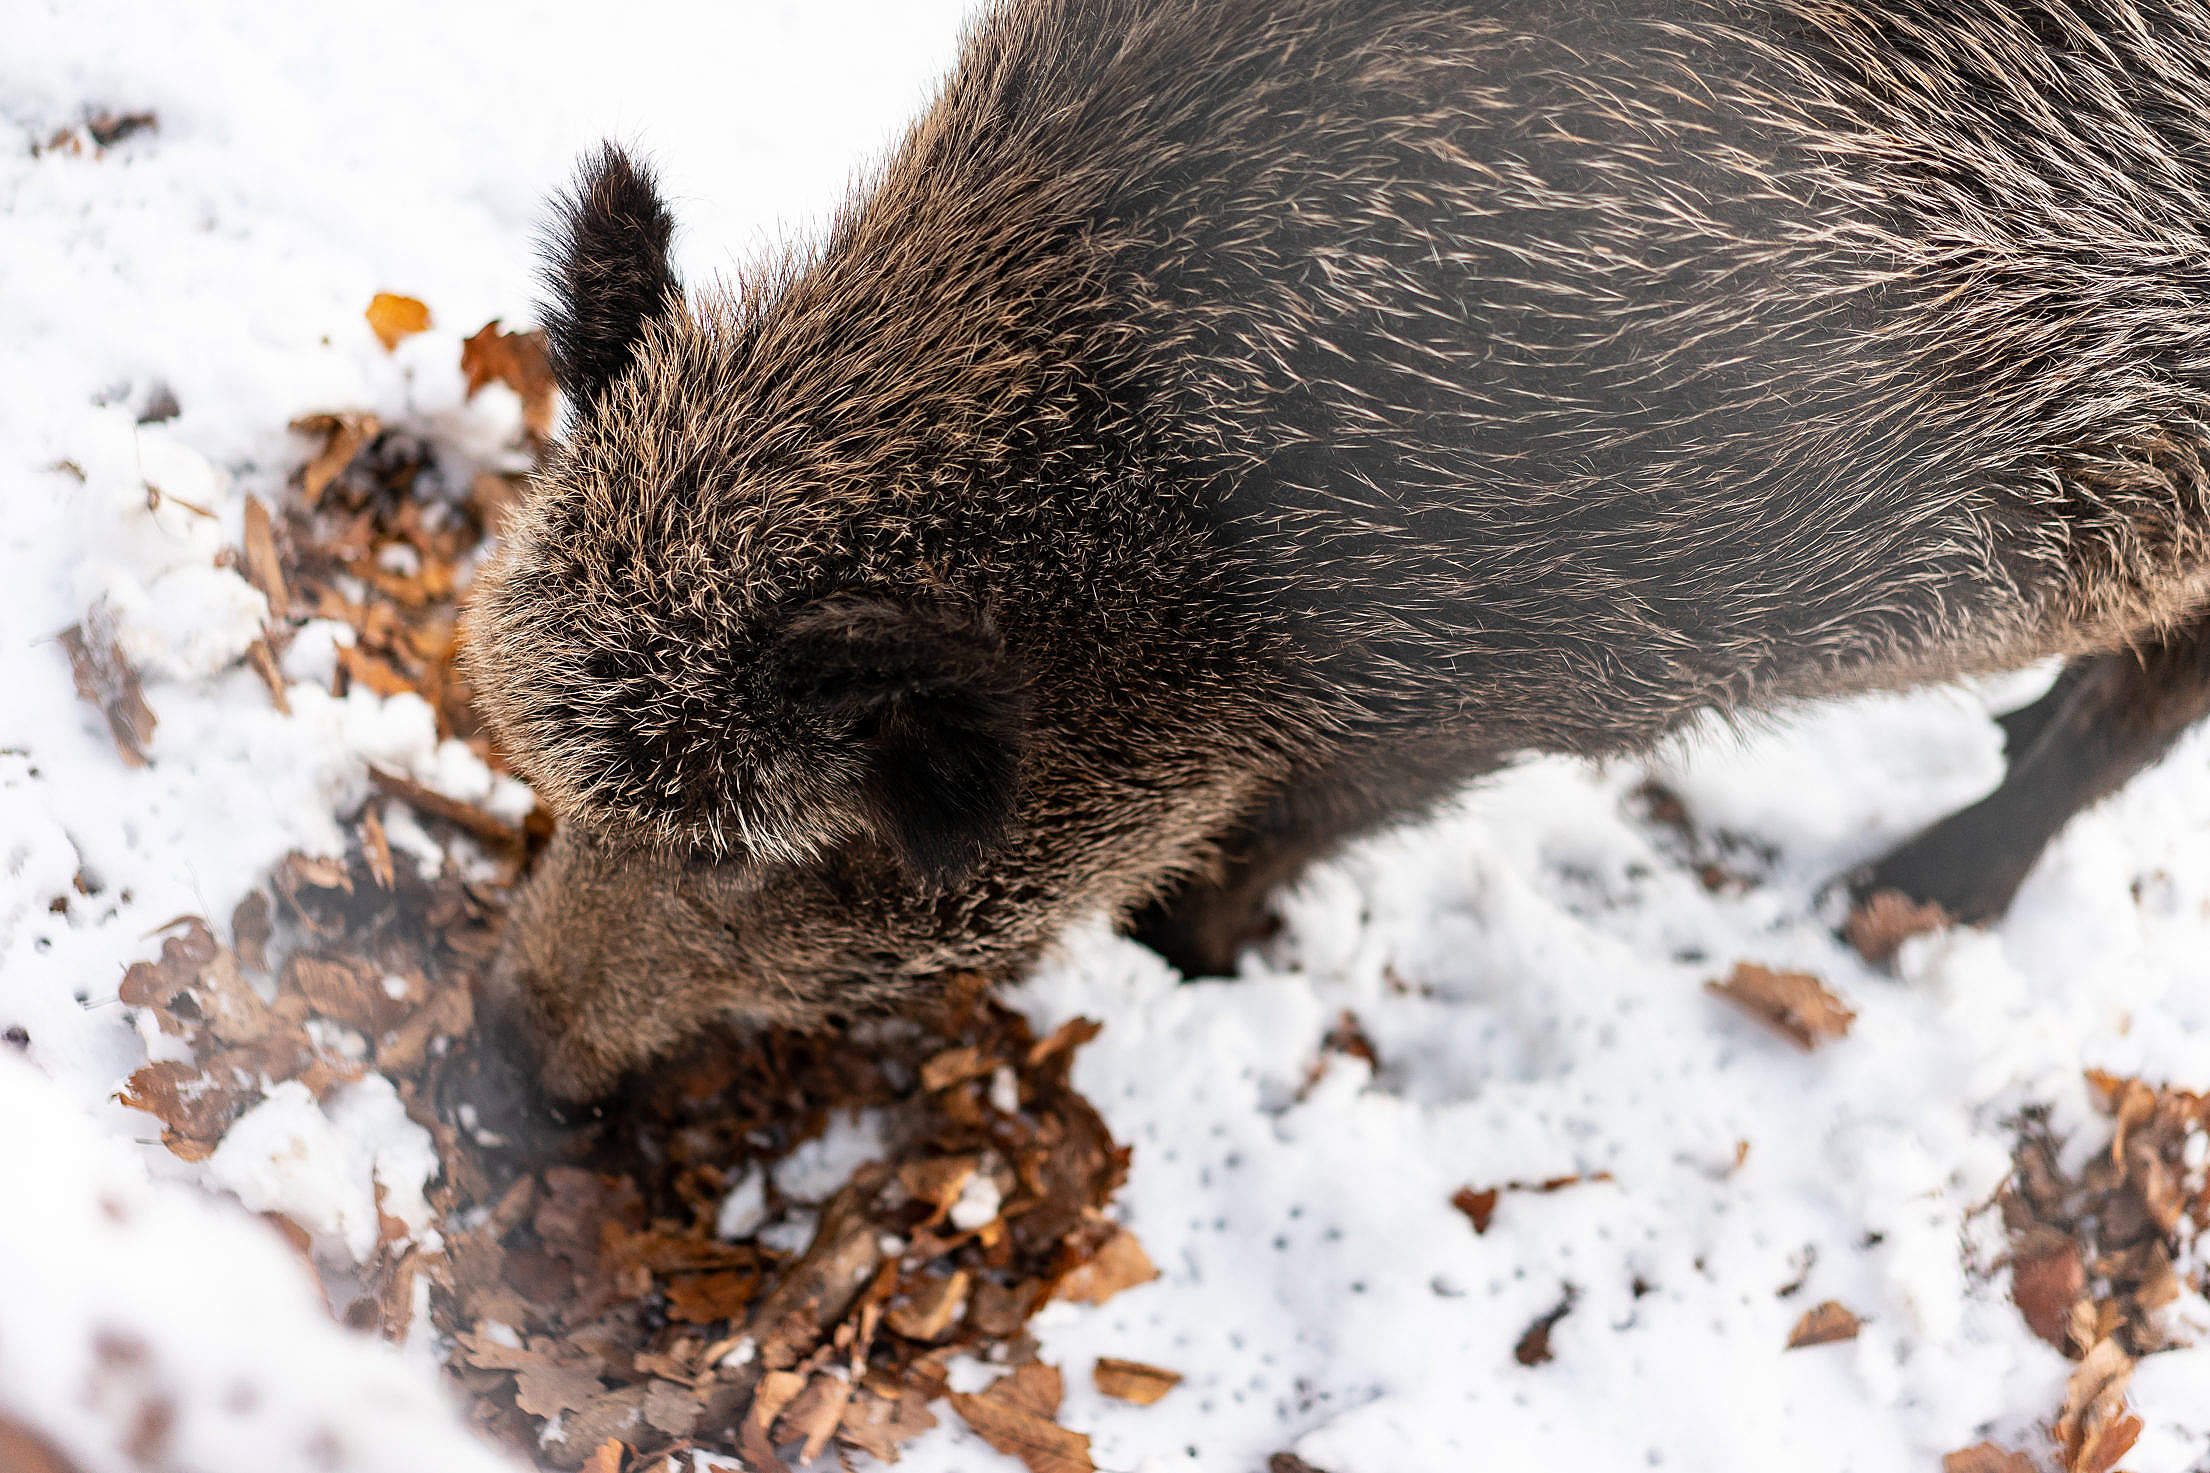 Wild Boar Eating in Snow Free Stock Photo